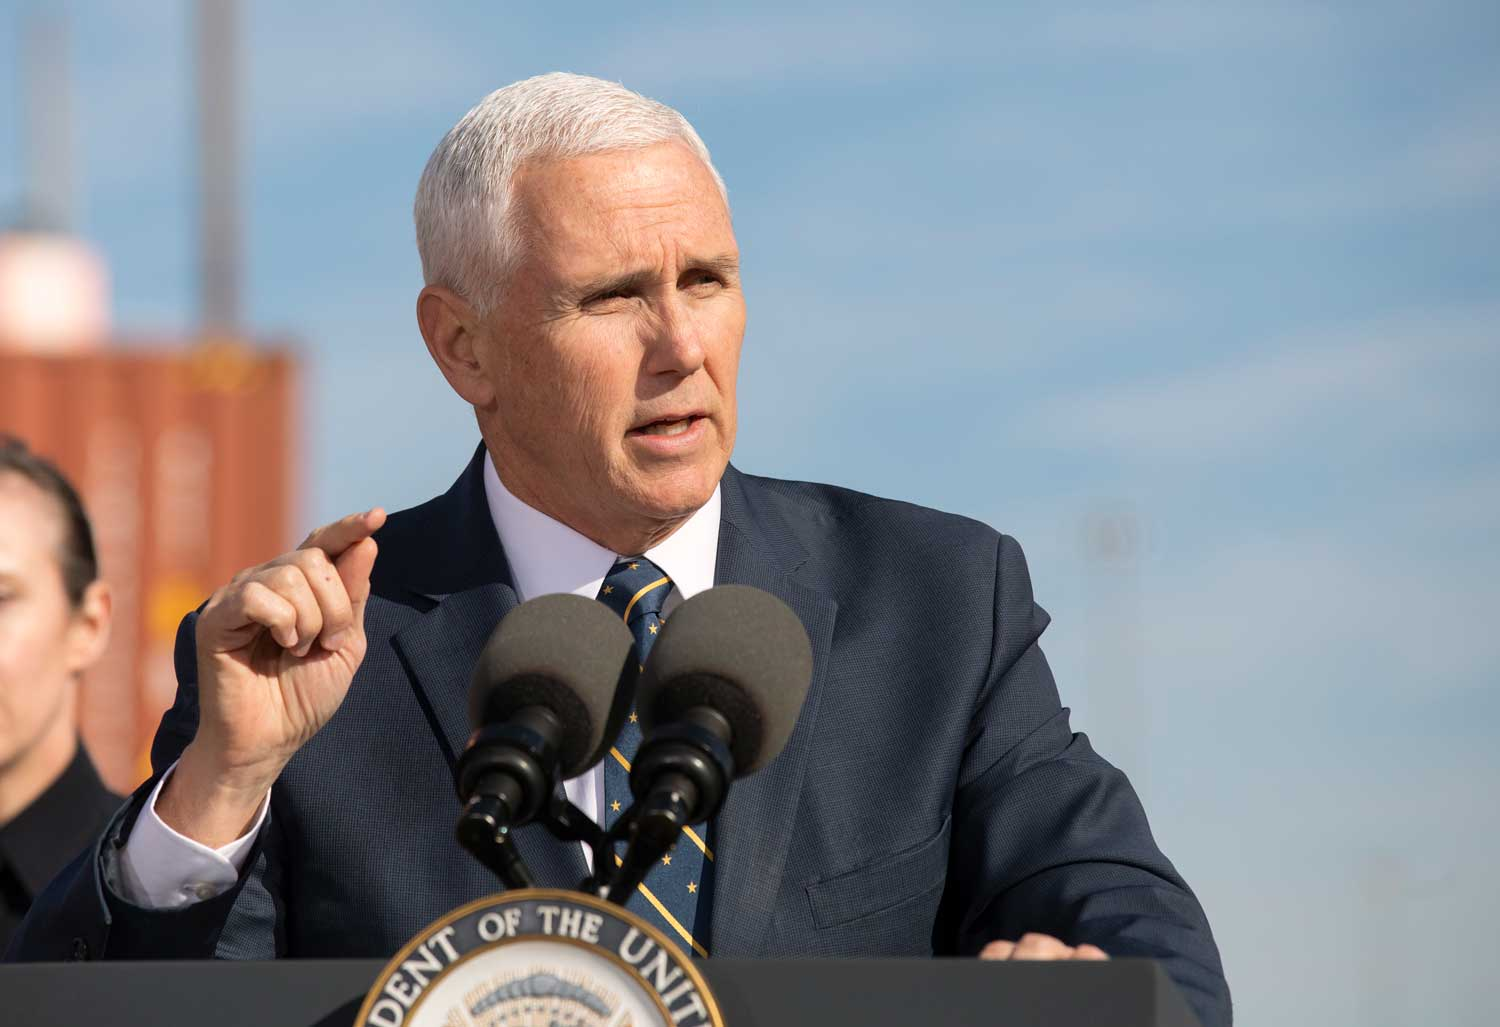 Vice president mike pence speaks at a podium in 2019